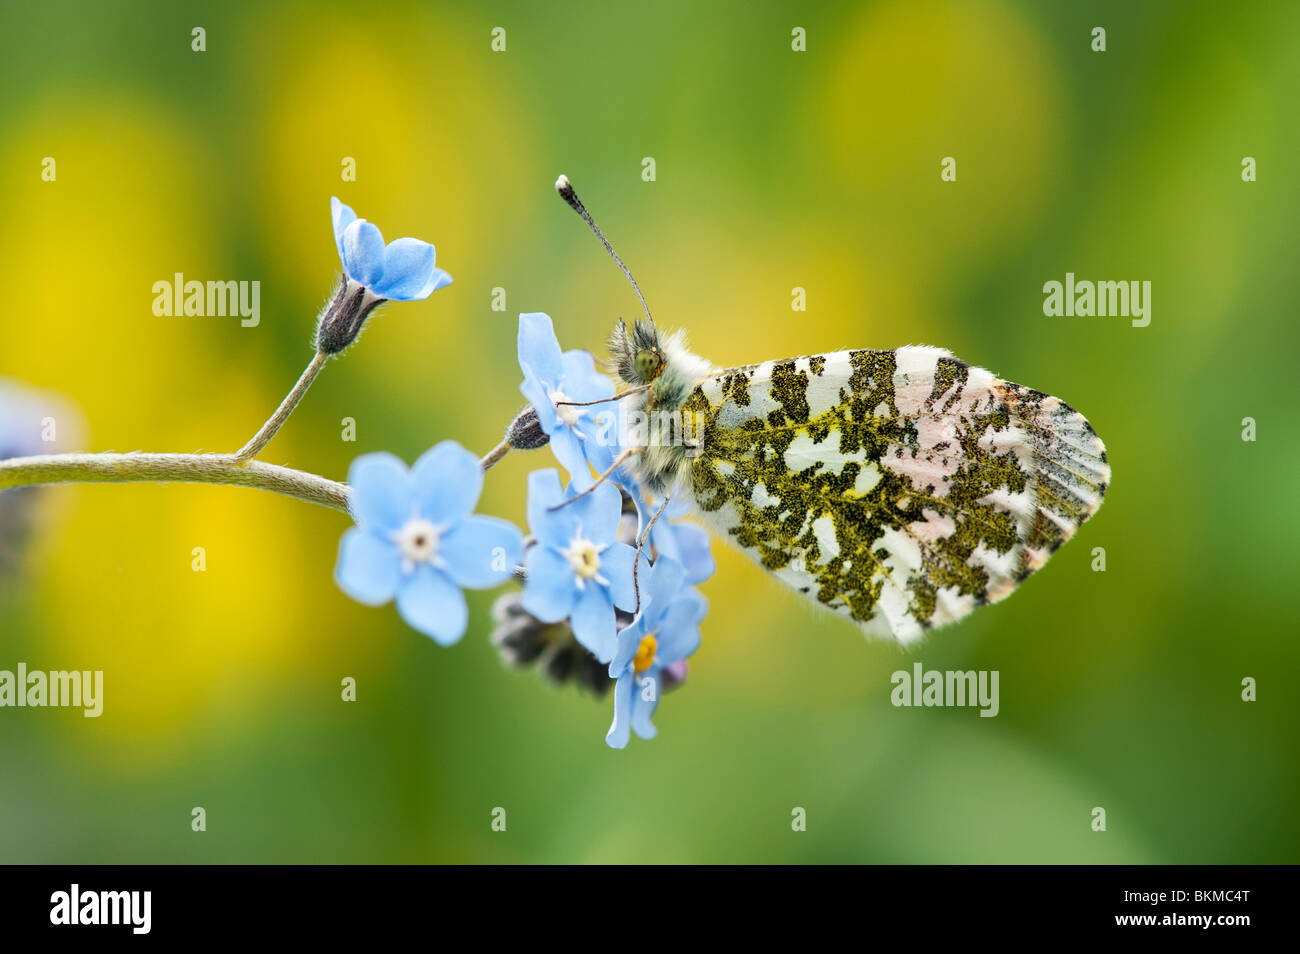 Anthocharis cardamines. Orange tip butterfly resting on 'forget me not' flowers in a garden - Stock Image